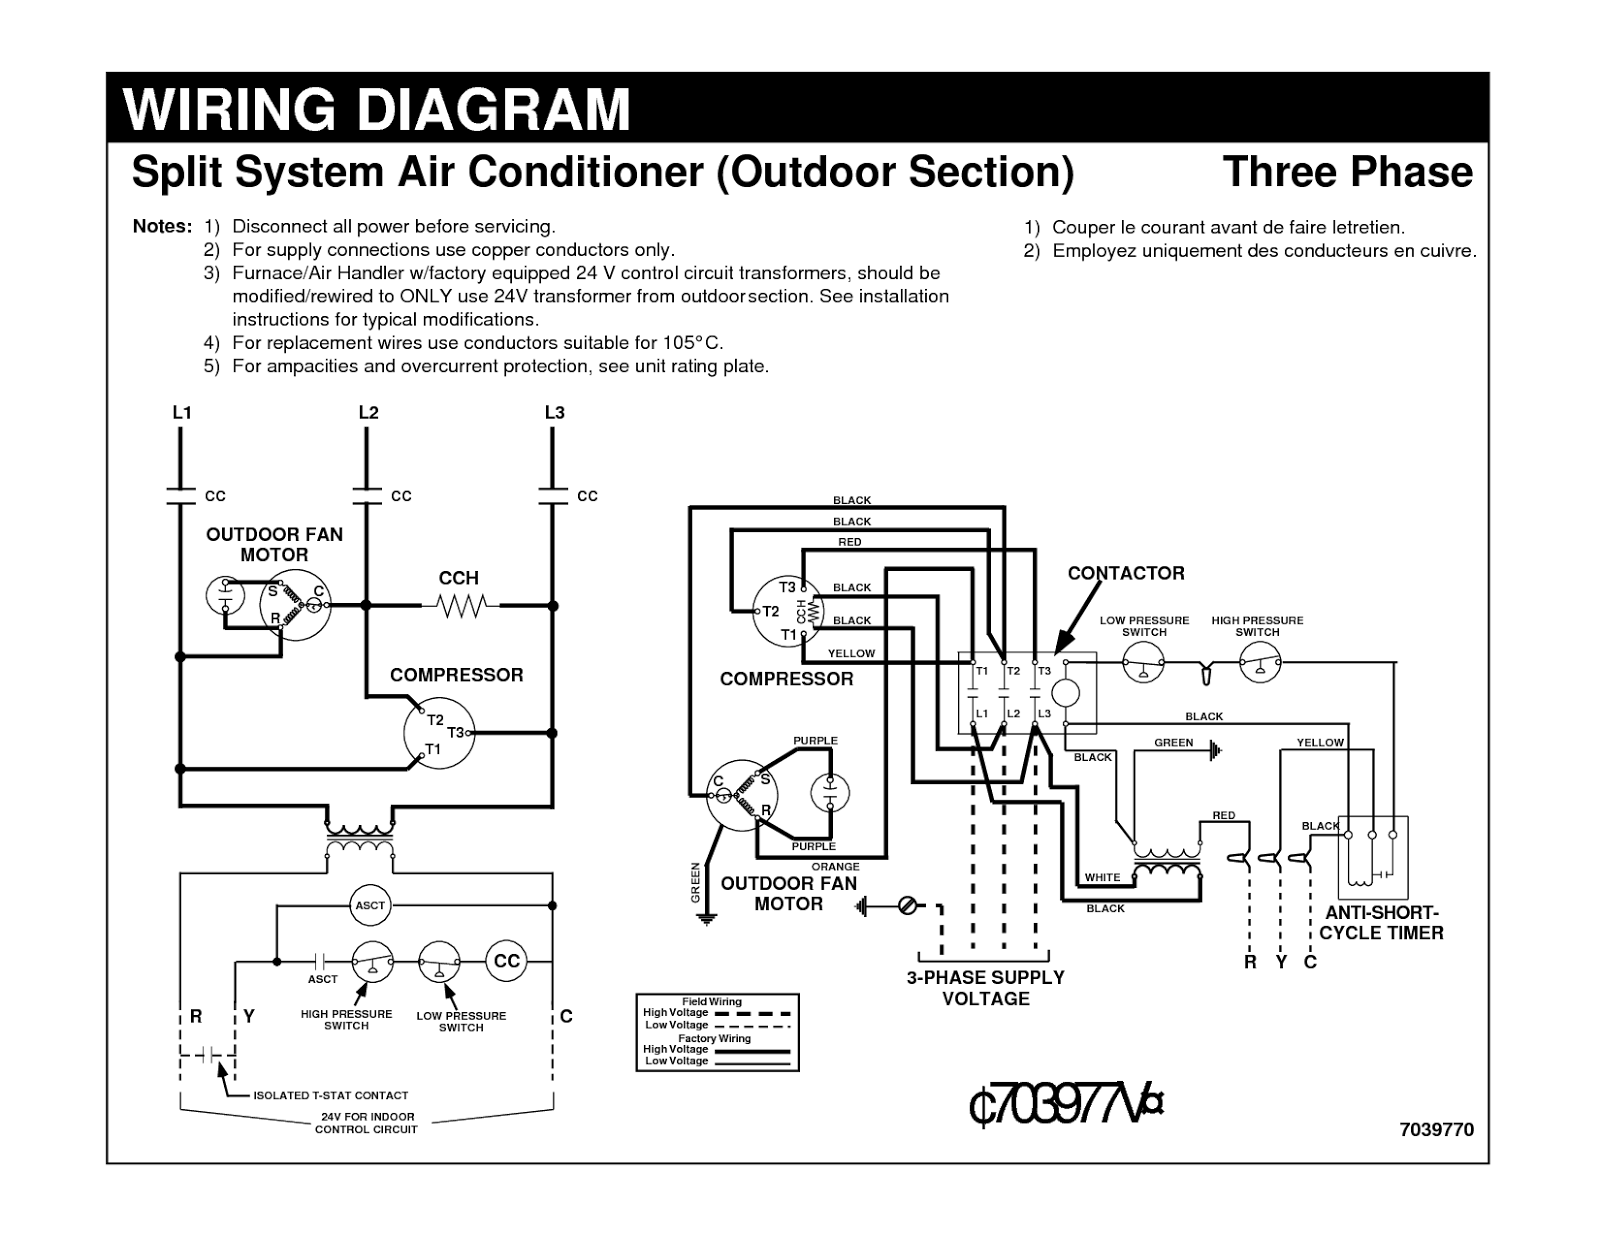 Electrical Wiring Diagrams For Air Conditioning Systems Part One Ac Wiring Basics #4 Ac Wiring Basics